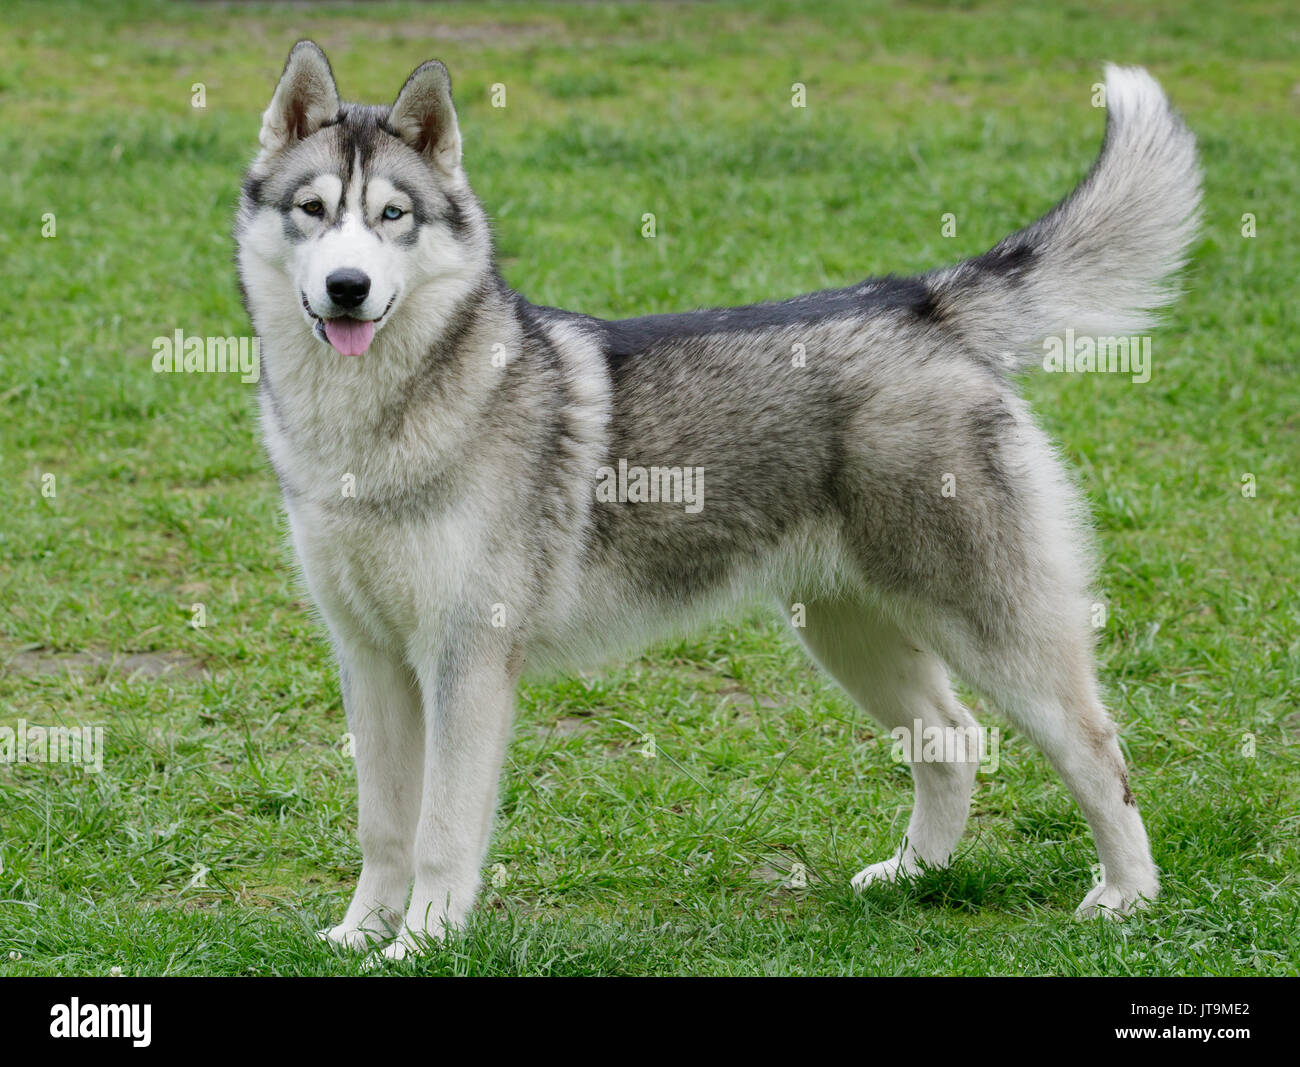 Portrait of beautiful Siberian Husky dog. - Stock Image